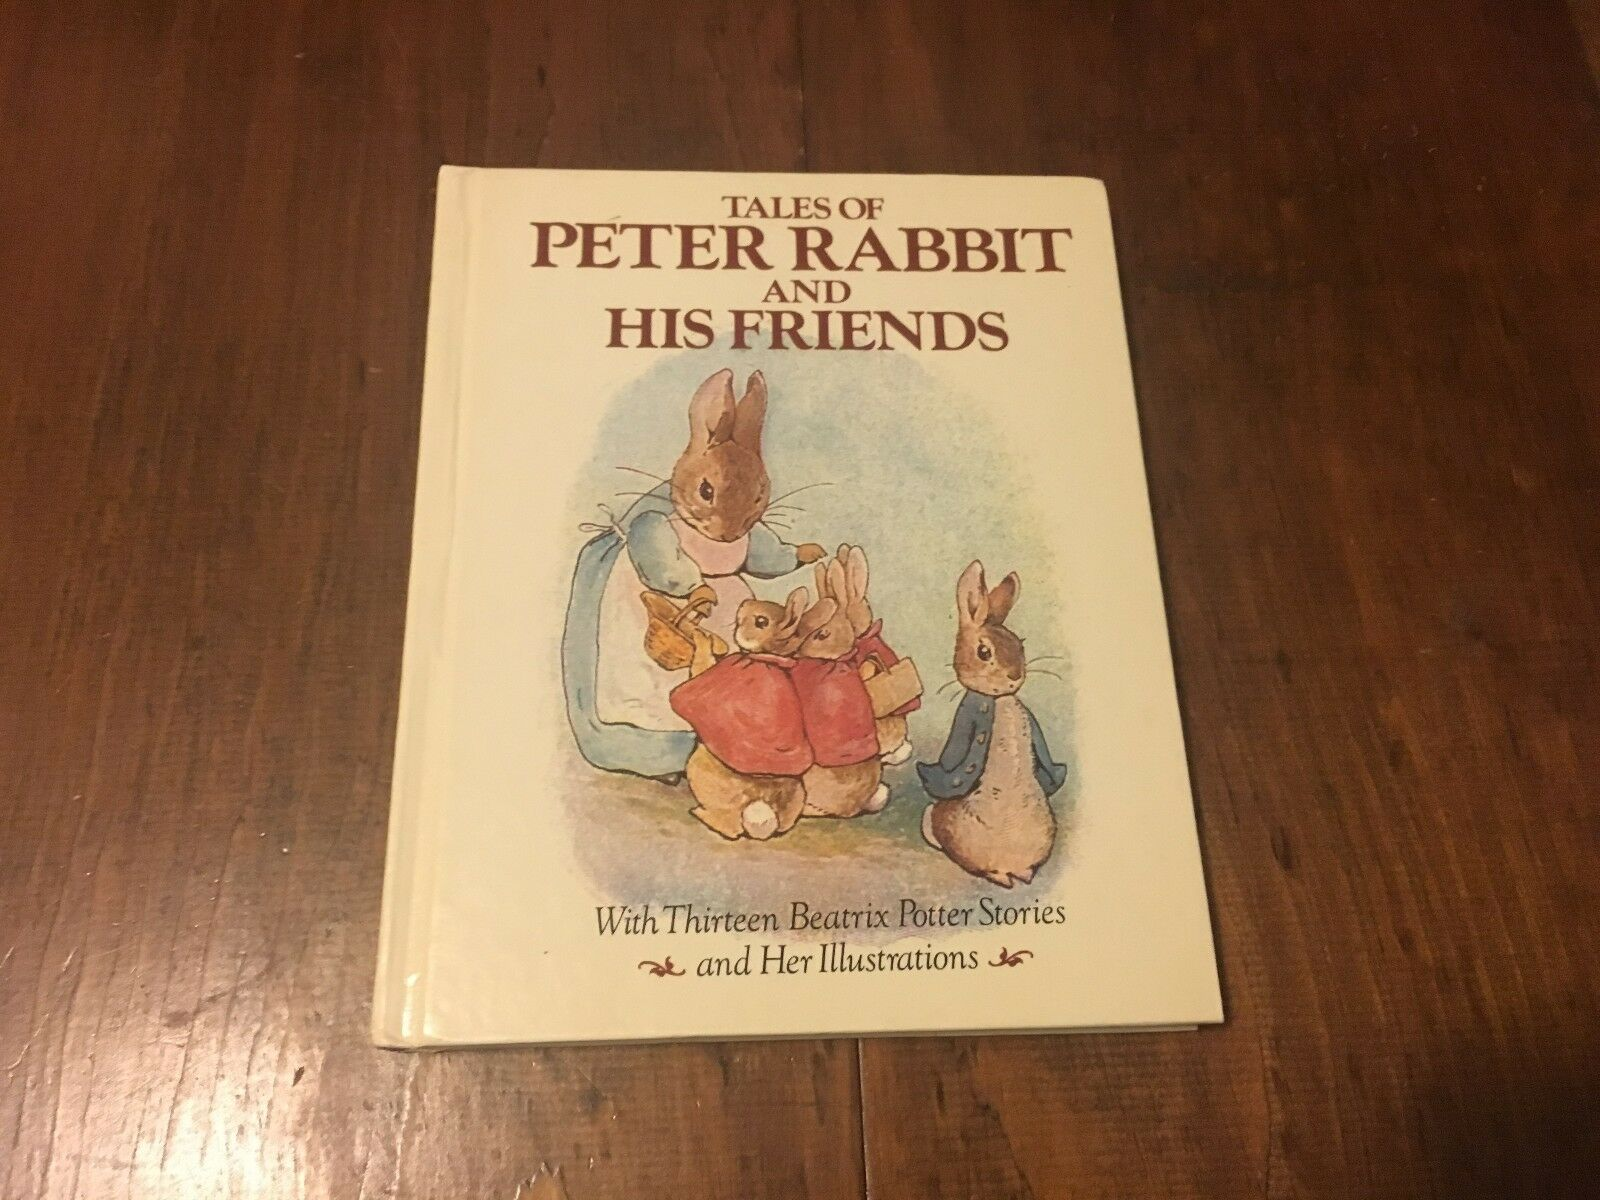 Tales of Peter Rabbit and His Friends by Beatrix Potter 1984 | eBay